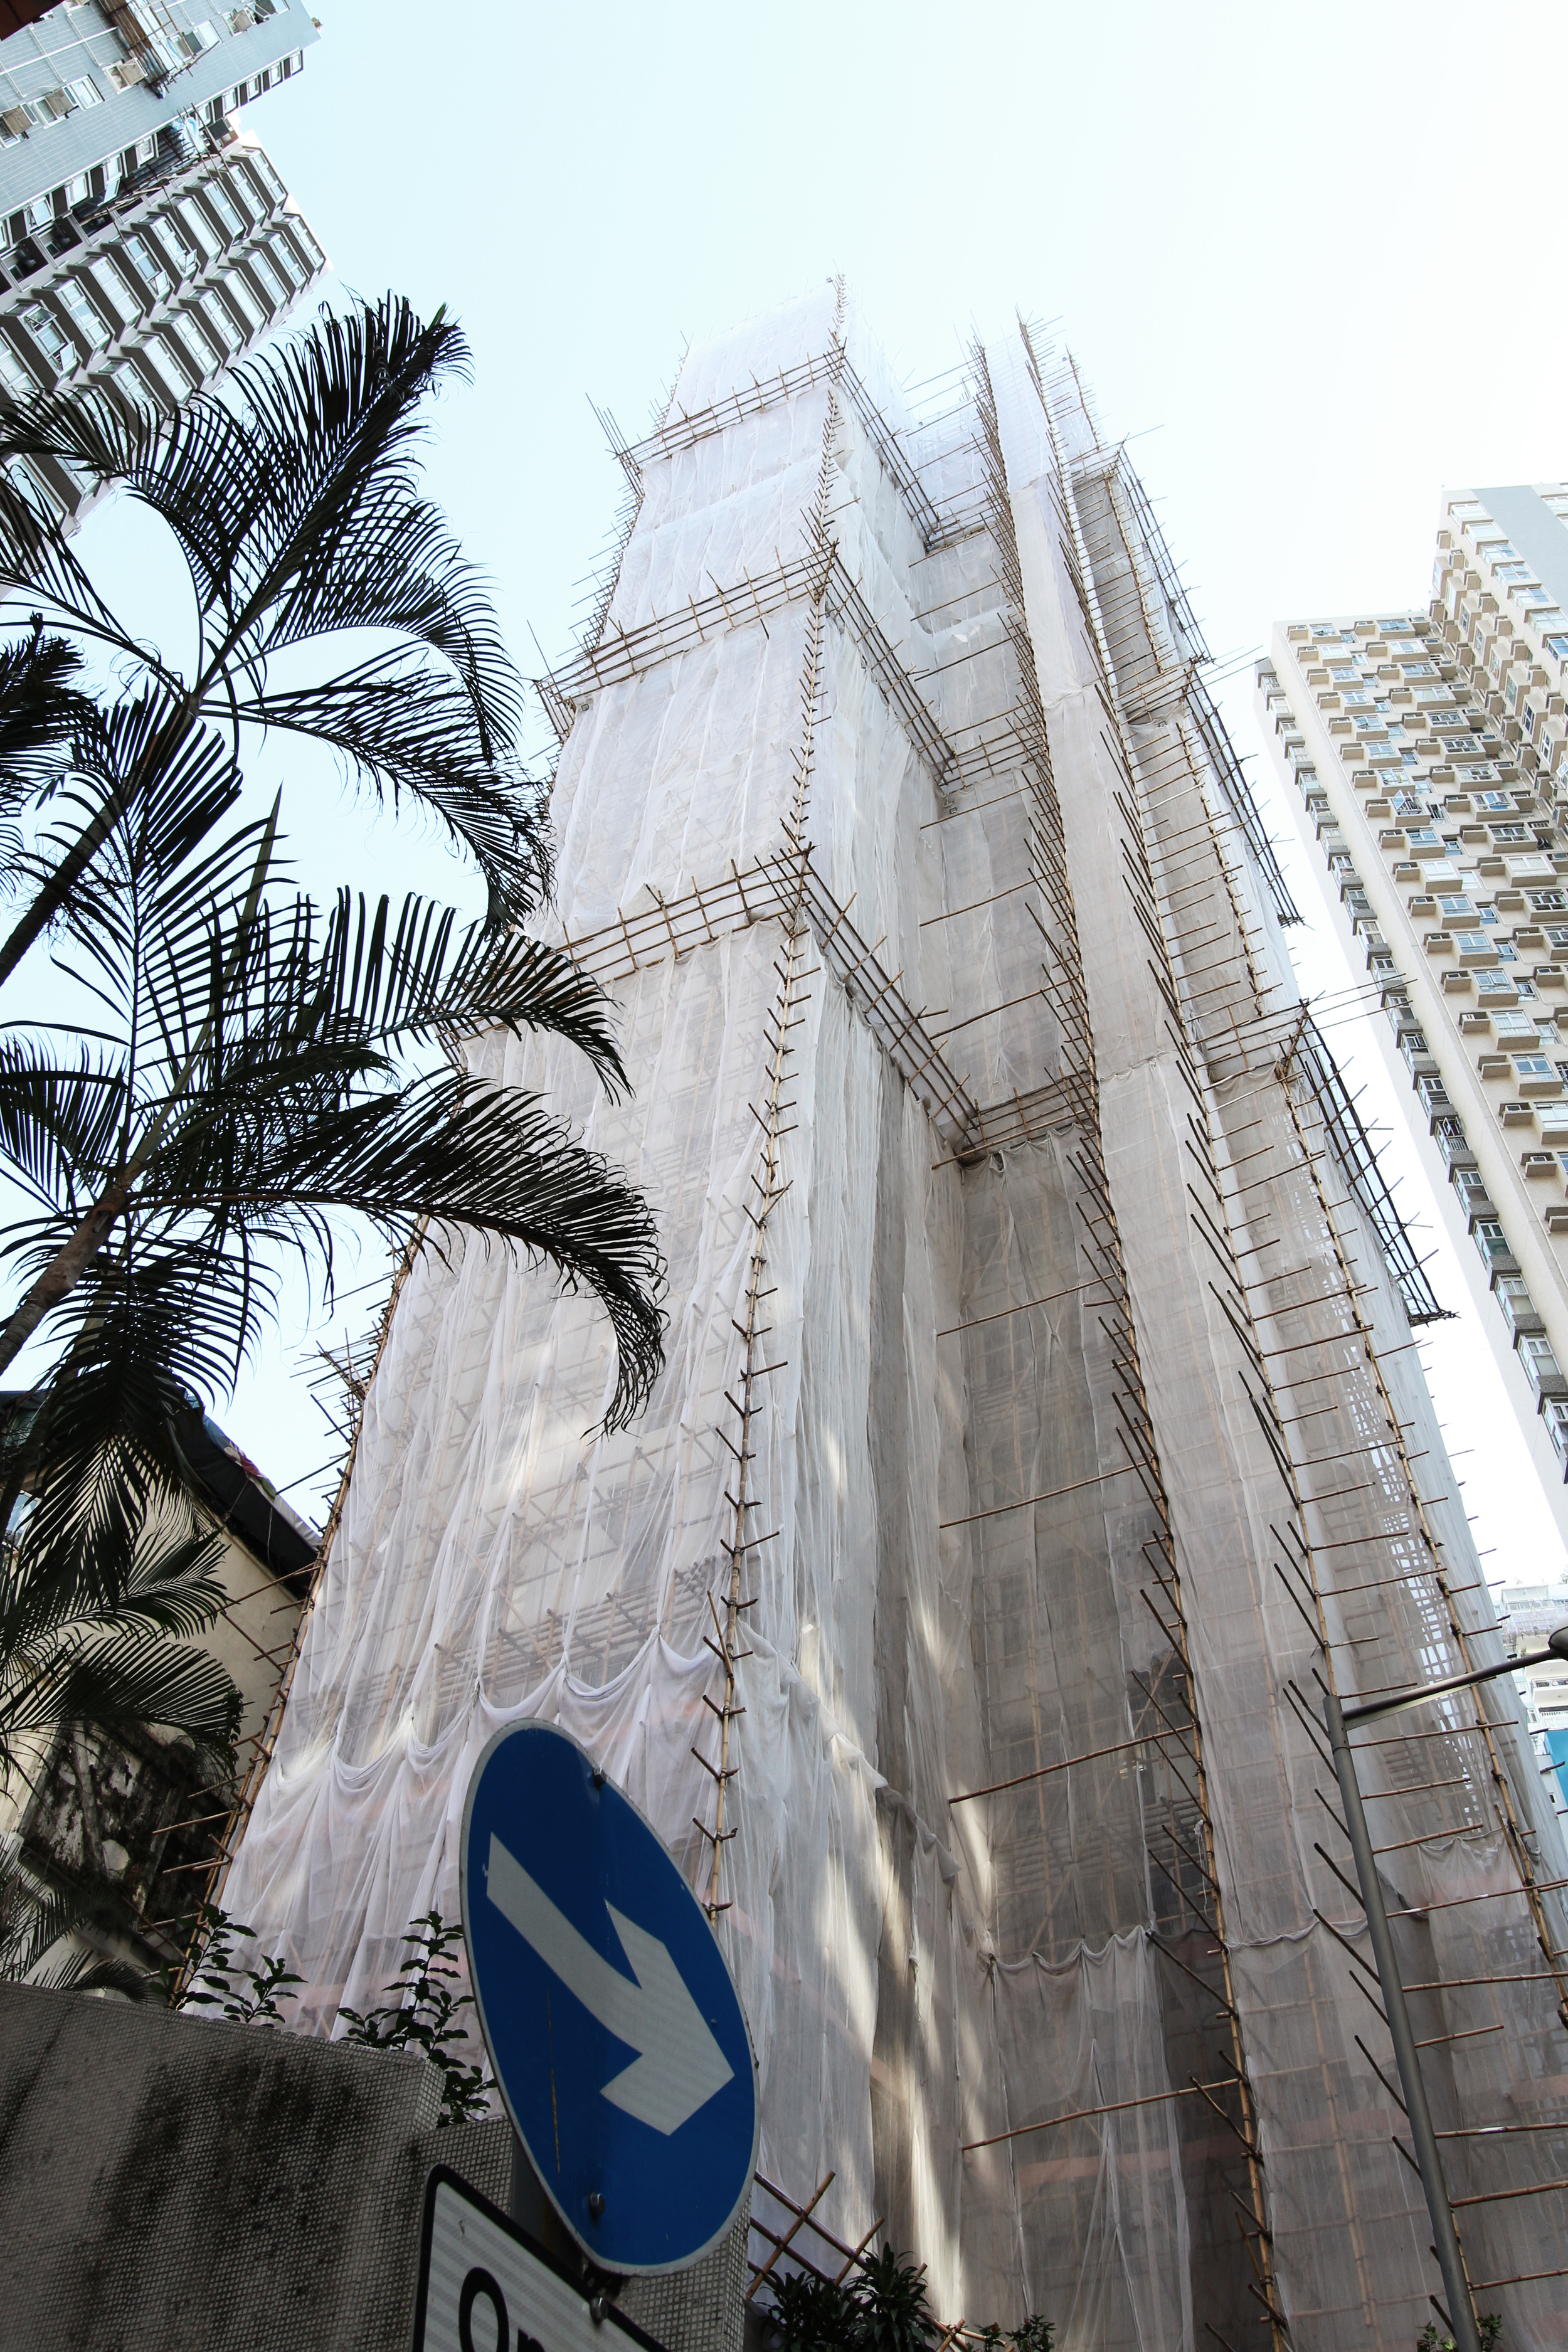 The bamboo scaffolding is preferred for construction work. It's amazing